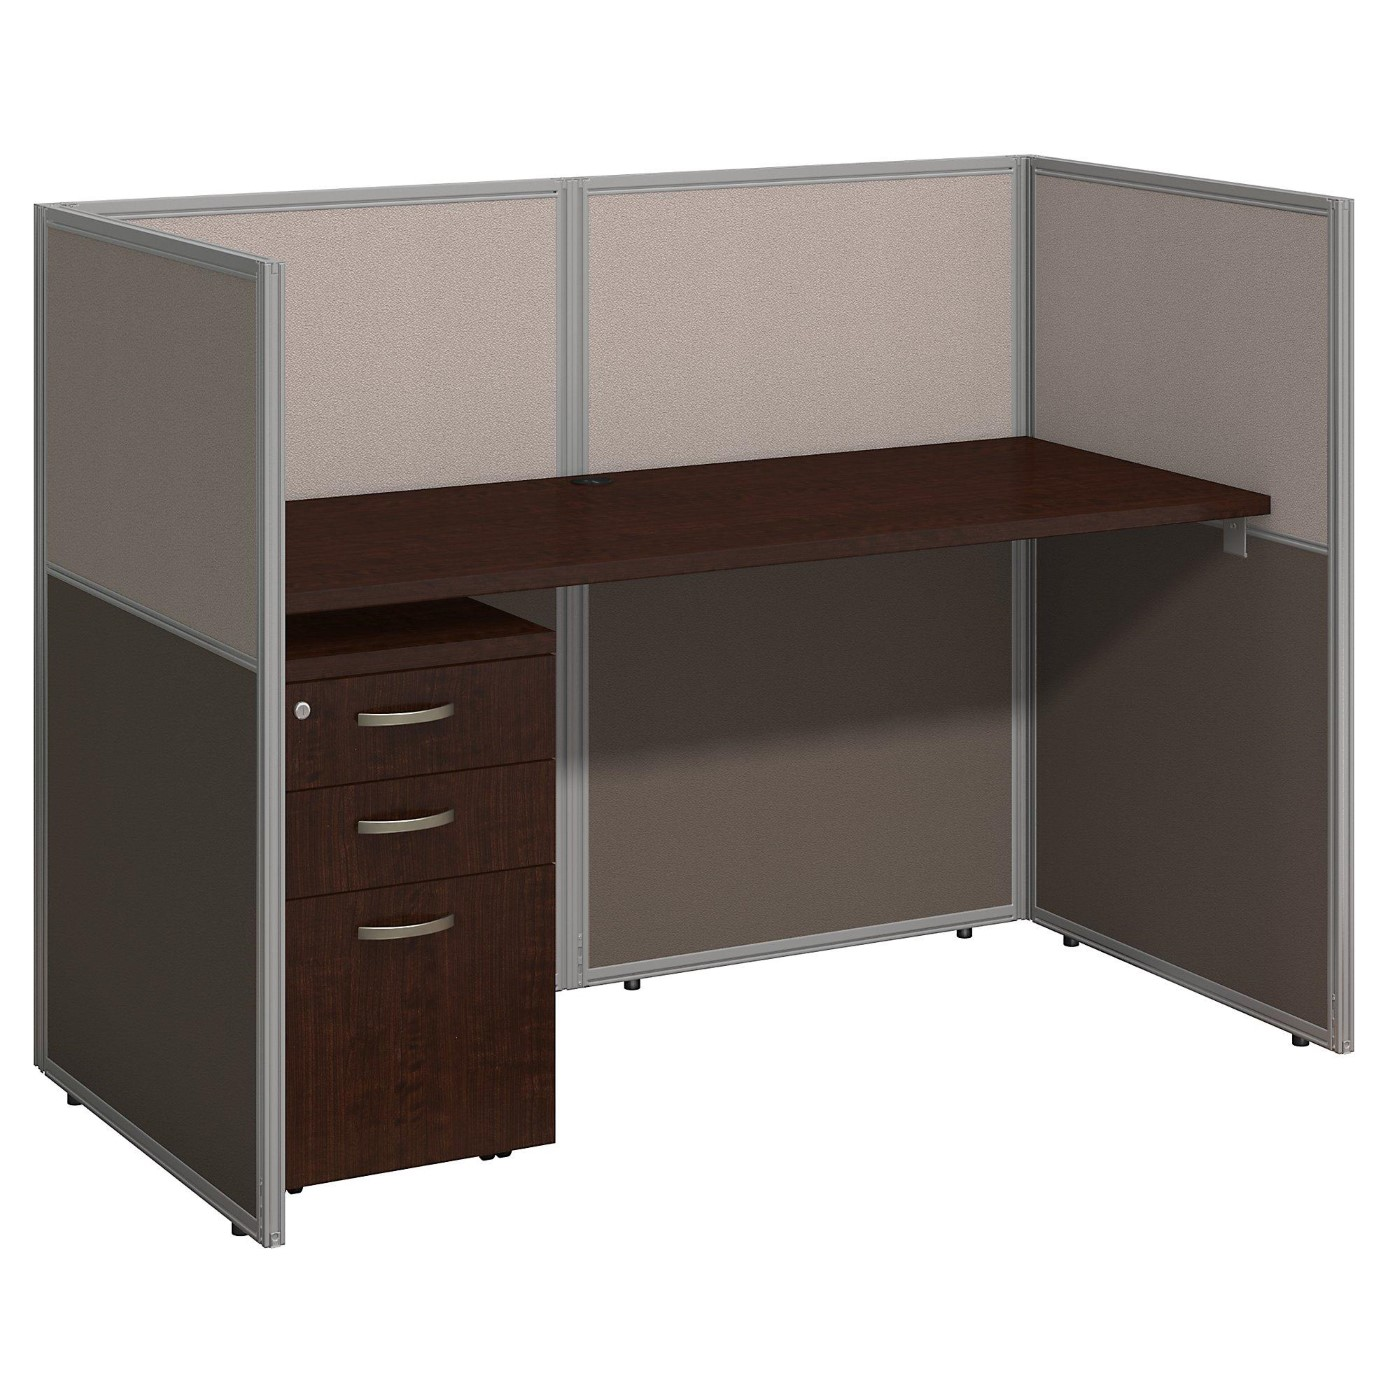 BUSH BUSINESS FURNITURE EASY OFFICE 60W STRAIGHT DESK CLOSED OFFICE WITH MOBILE FILE CABINET. FREE SHIPPING.  SALE DEDUCT 10% MORE ENTER '10percent' IN COUPON CODE BOX WHILE CHECKING OUT. ENDS 5-31-20.